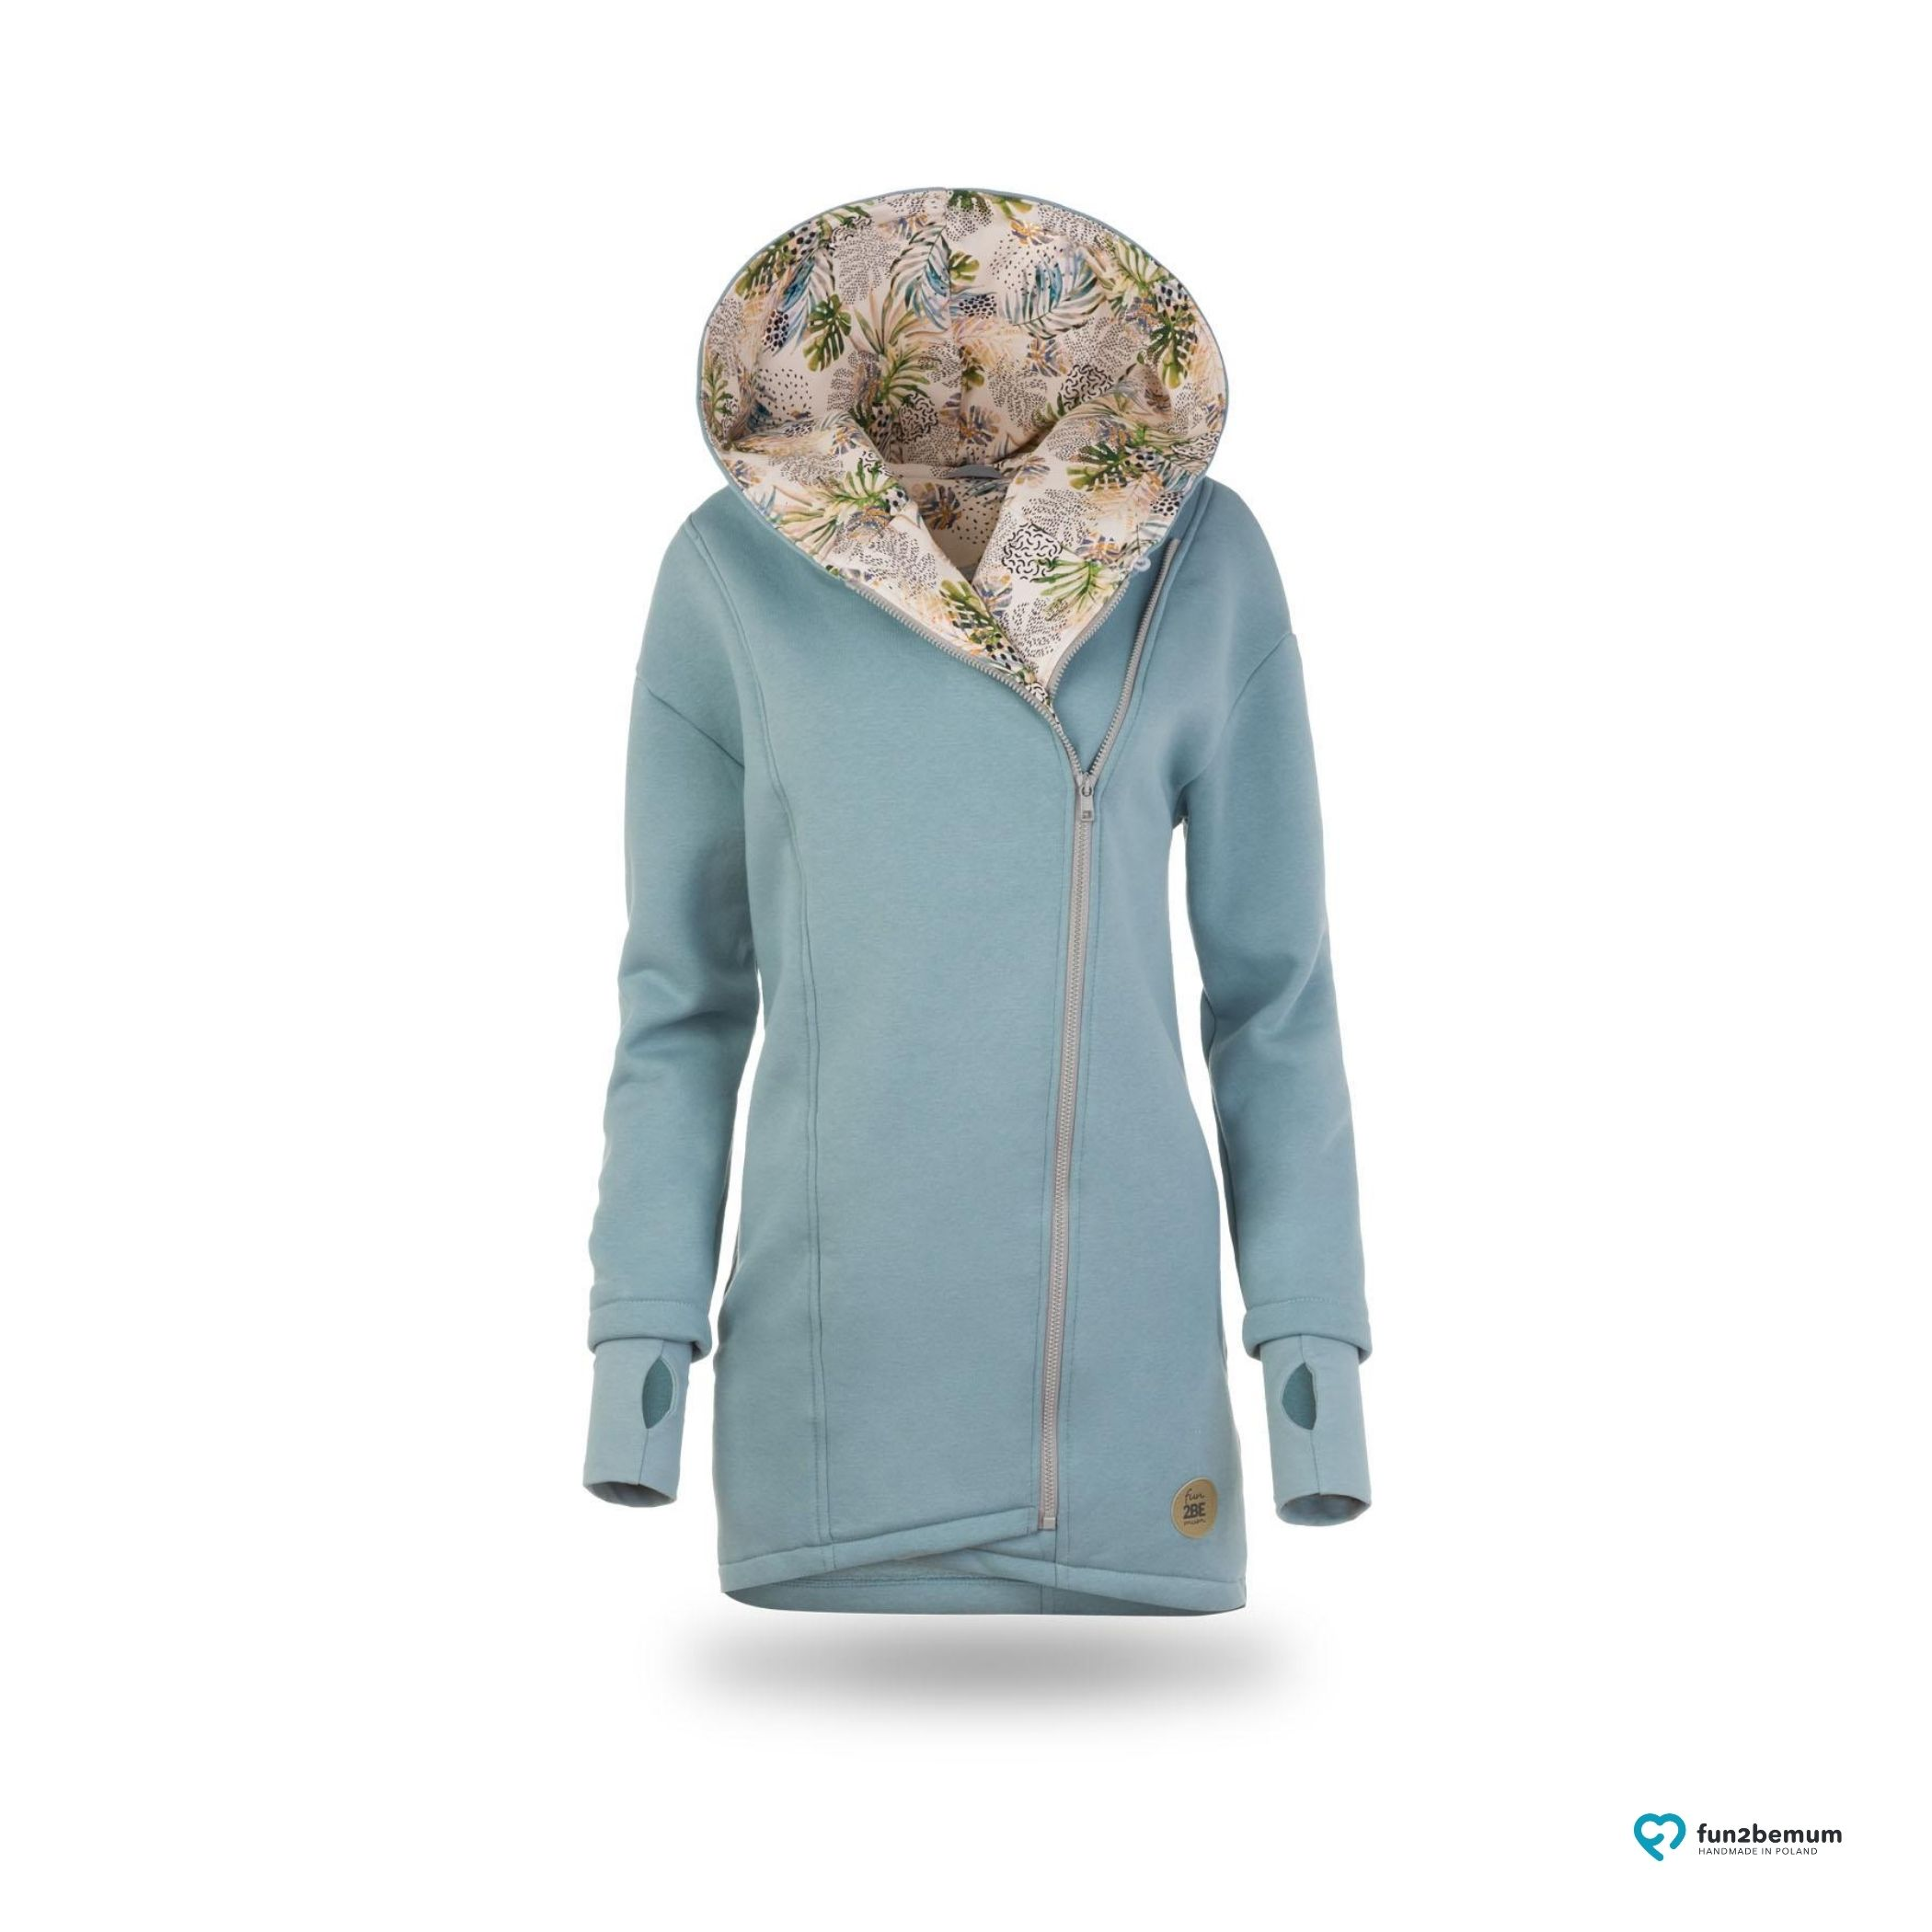 Pregnancy, Maternity Frontback carry Babywearing COAT-HOODIE 4in1 Greyse